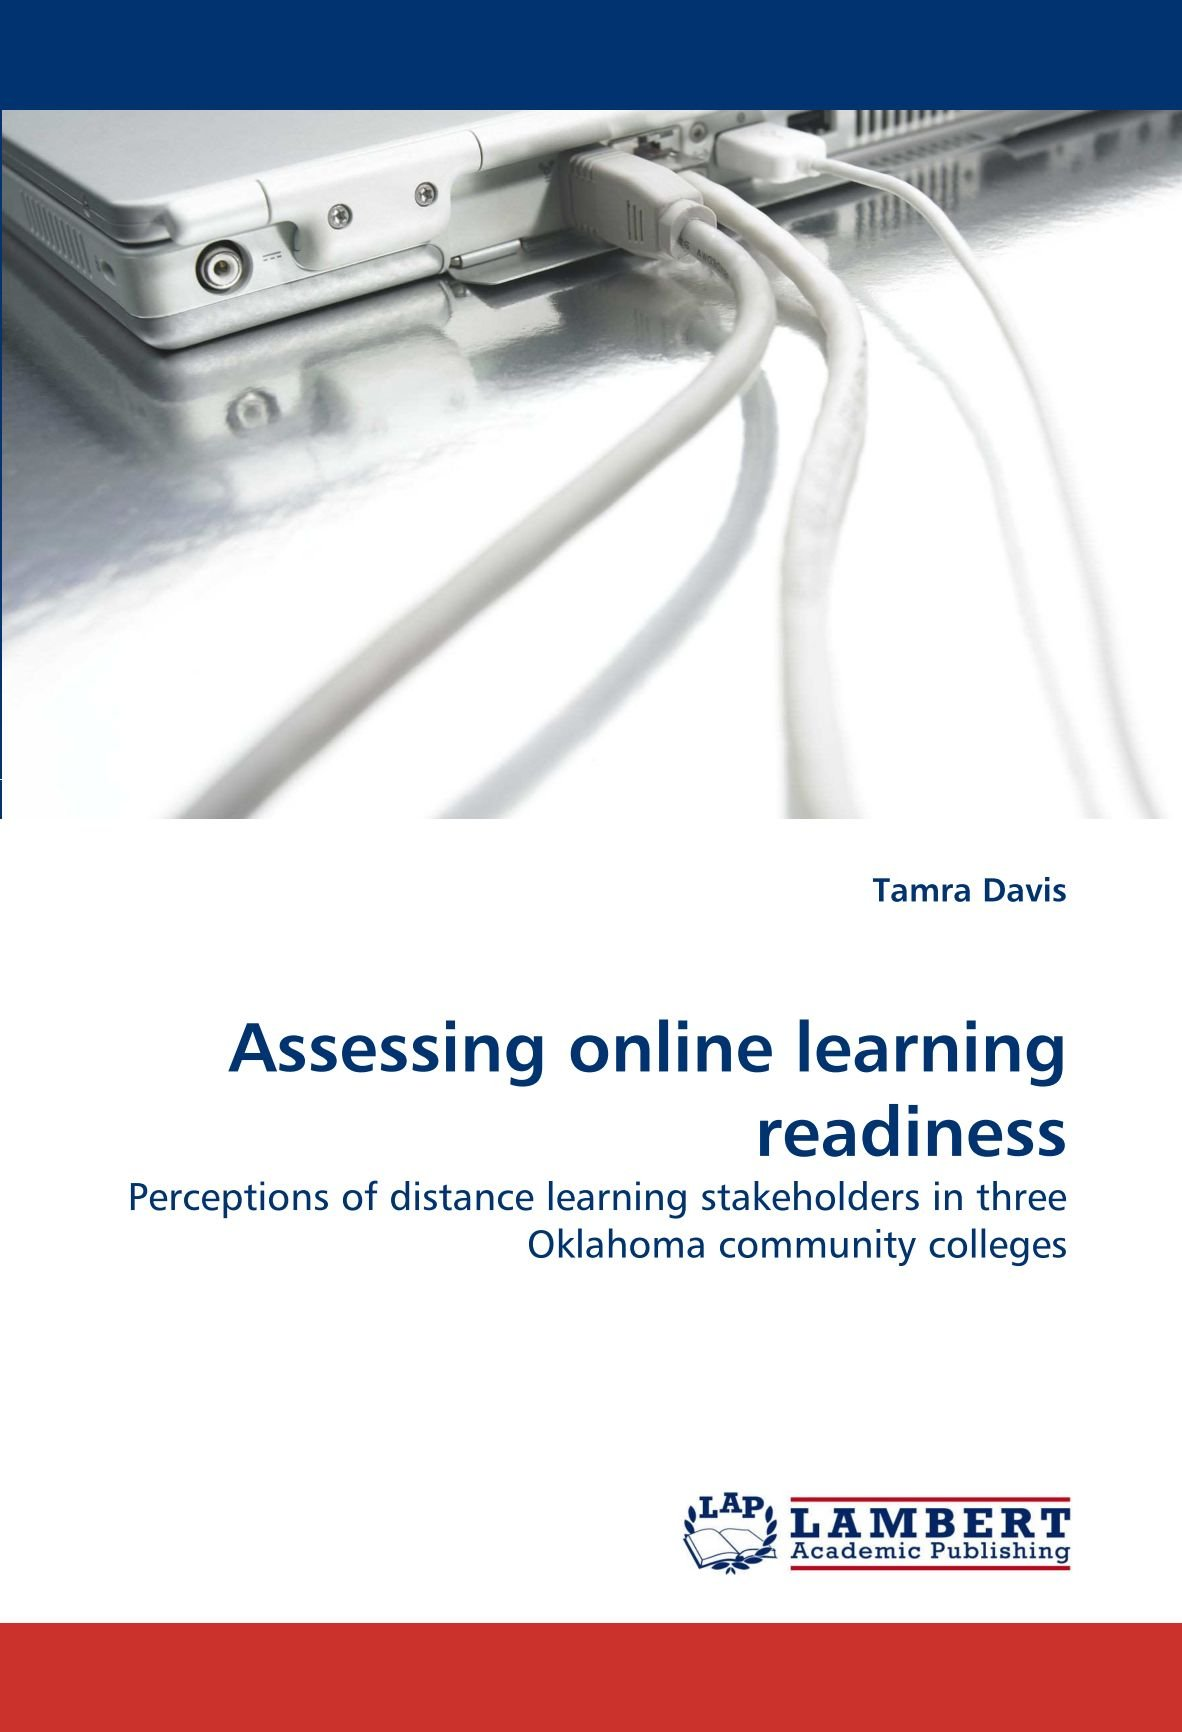 Download Assessing online learning readiness: Perceptions of distance learning stakeholders in three Oklahoma community colleges PDF